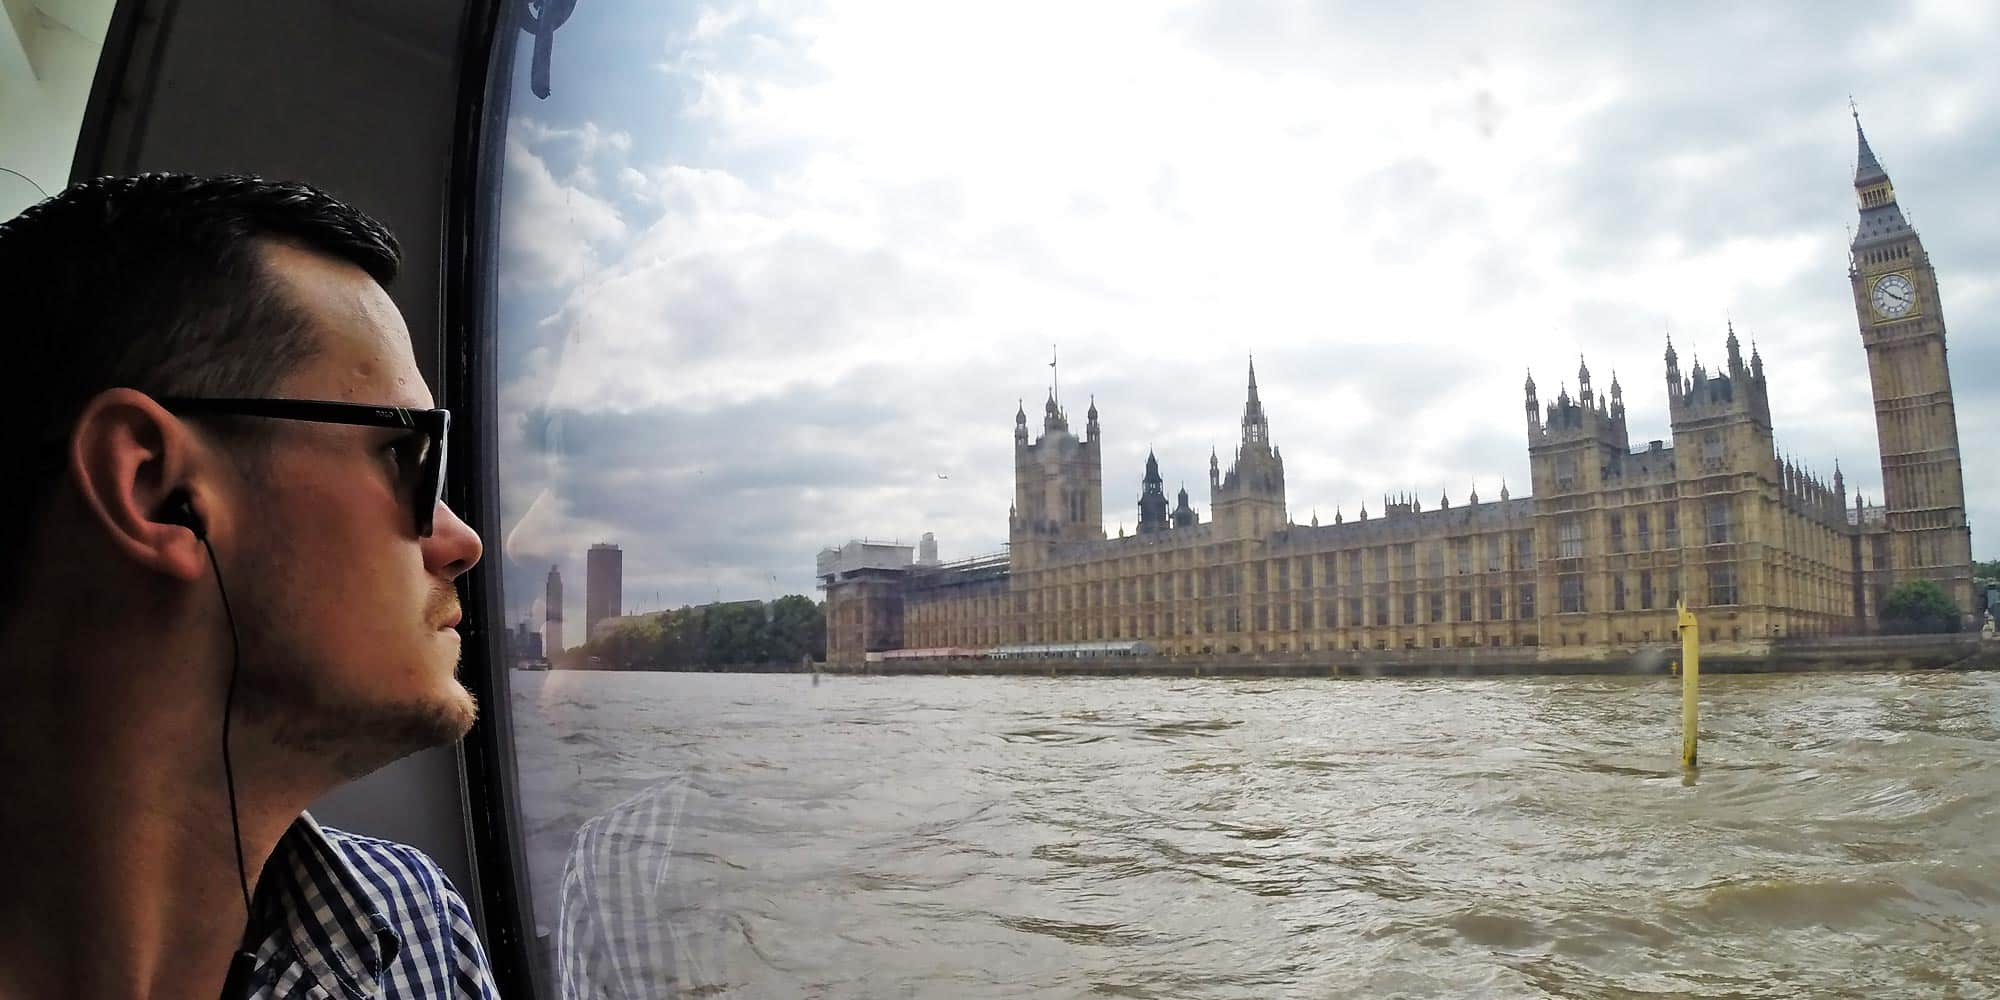 LondonMeBoat